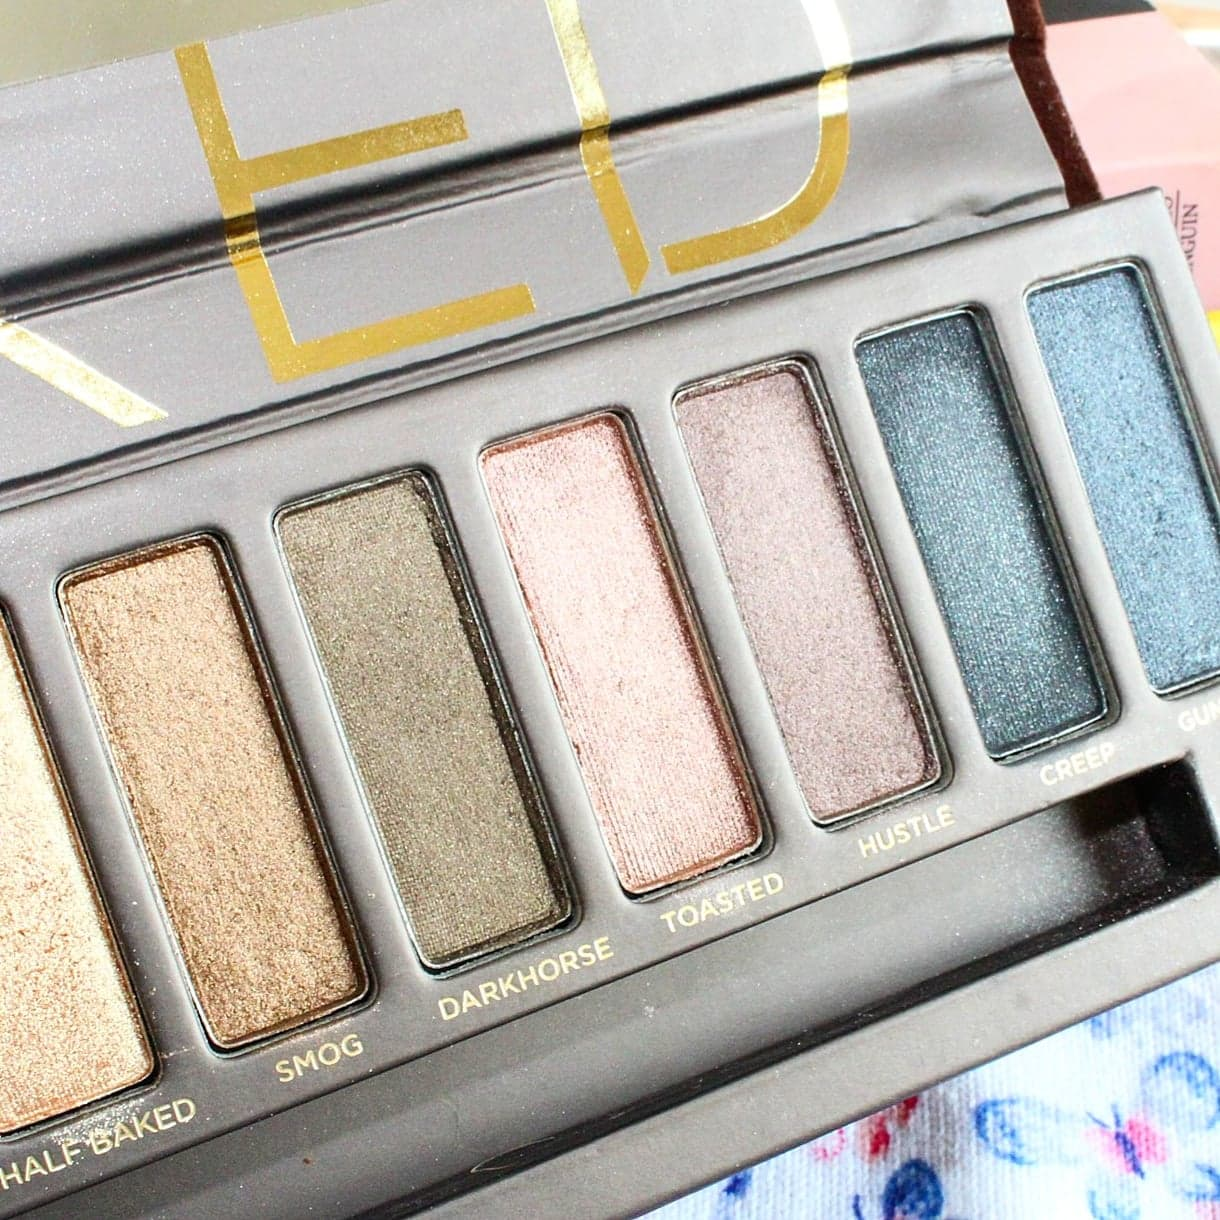 Saying Goodbye to the Original Naked Urban Decay Palette